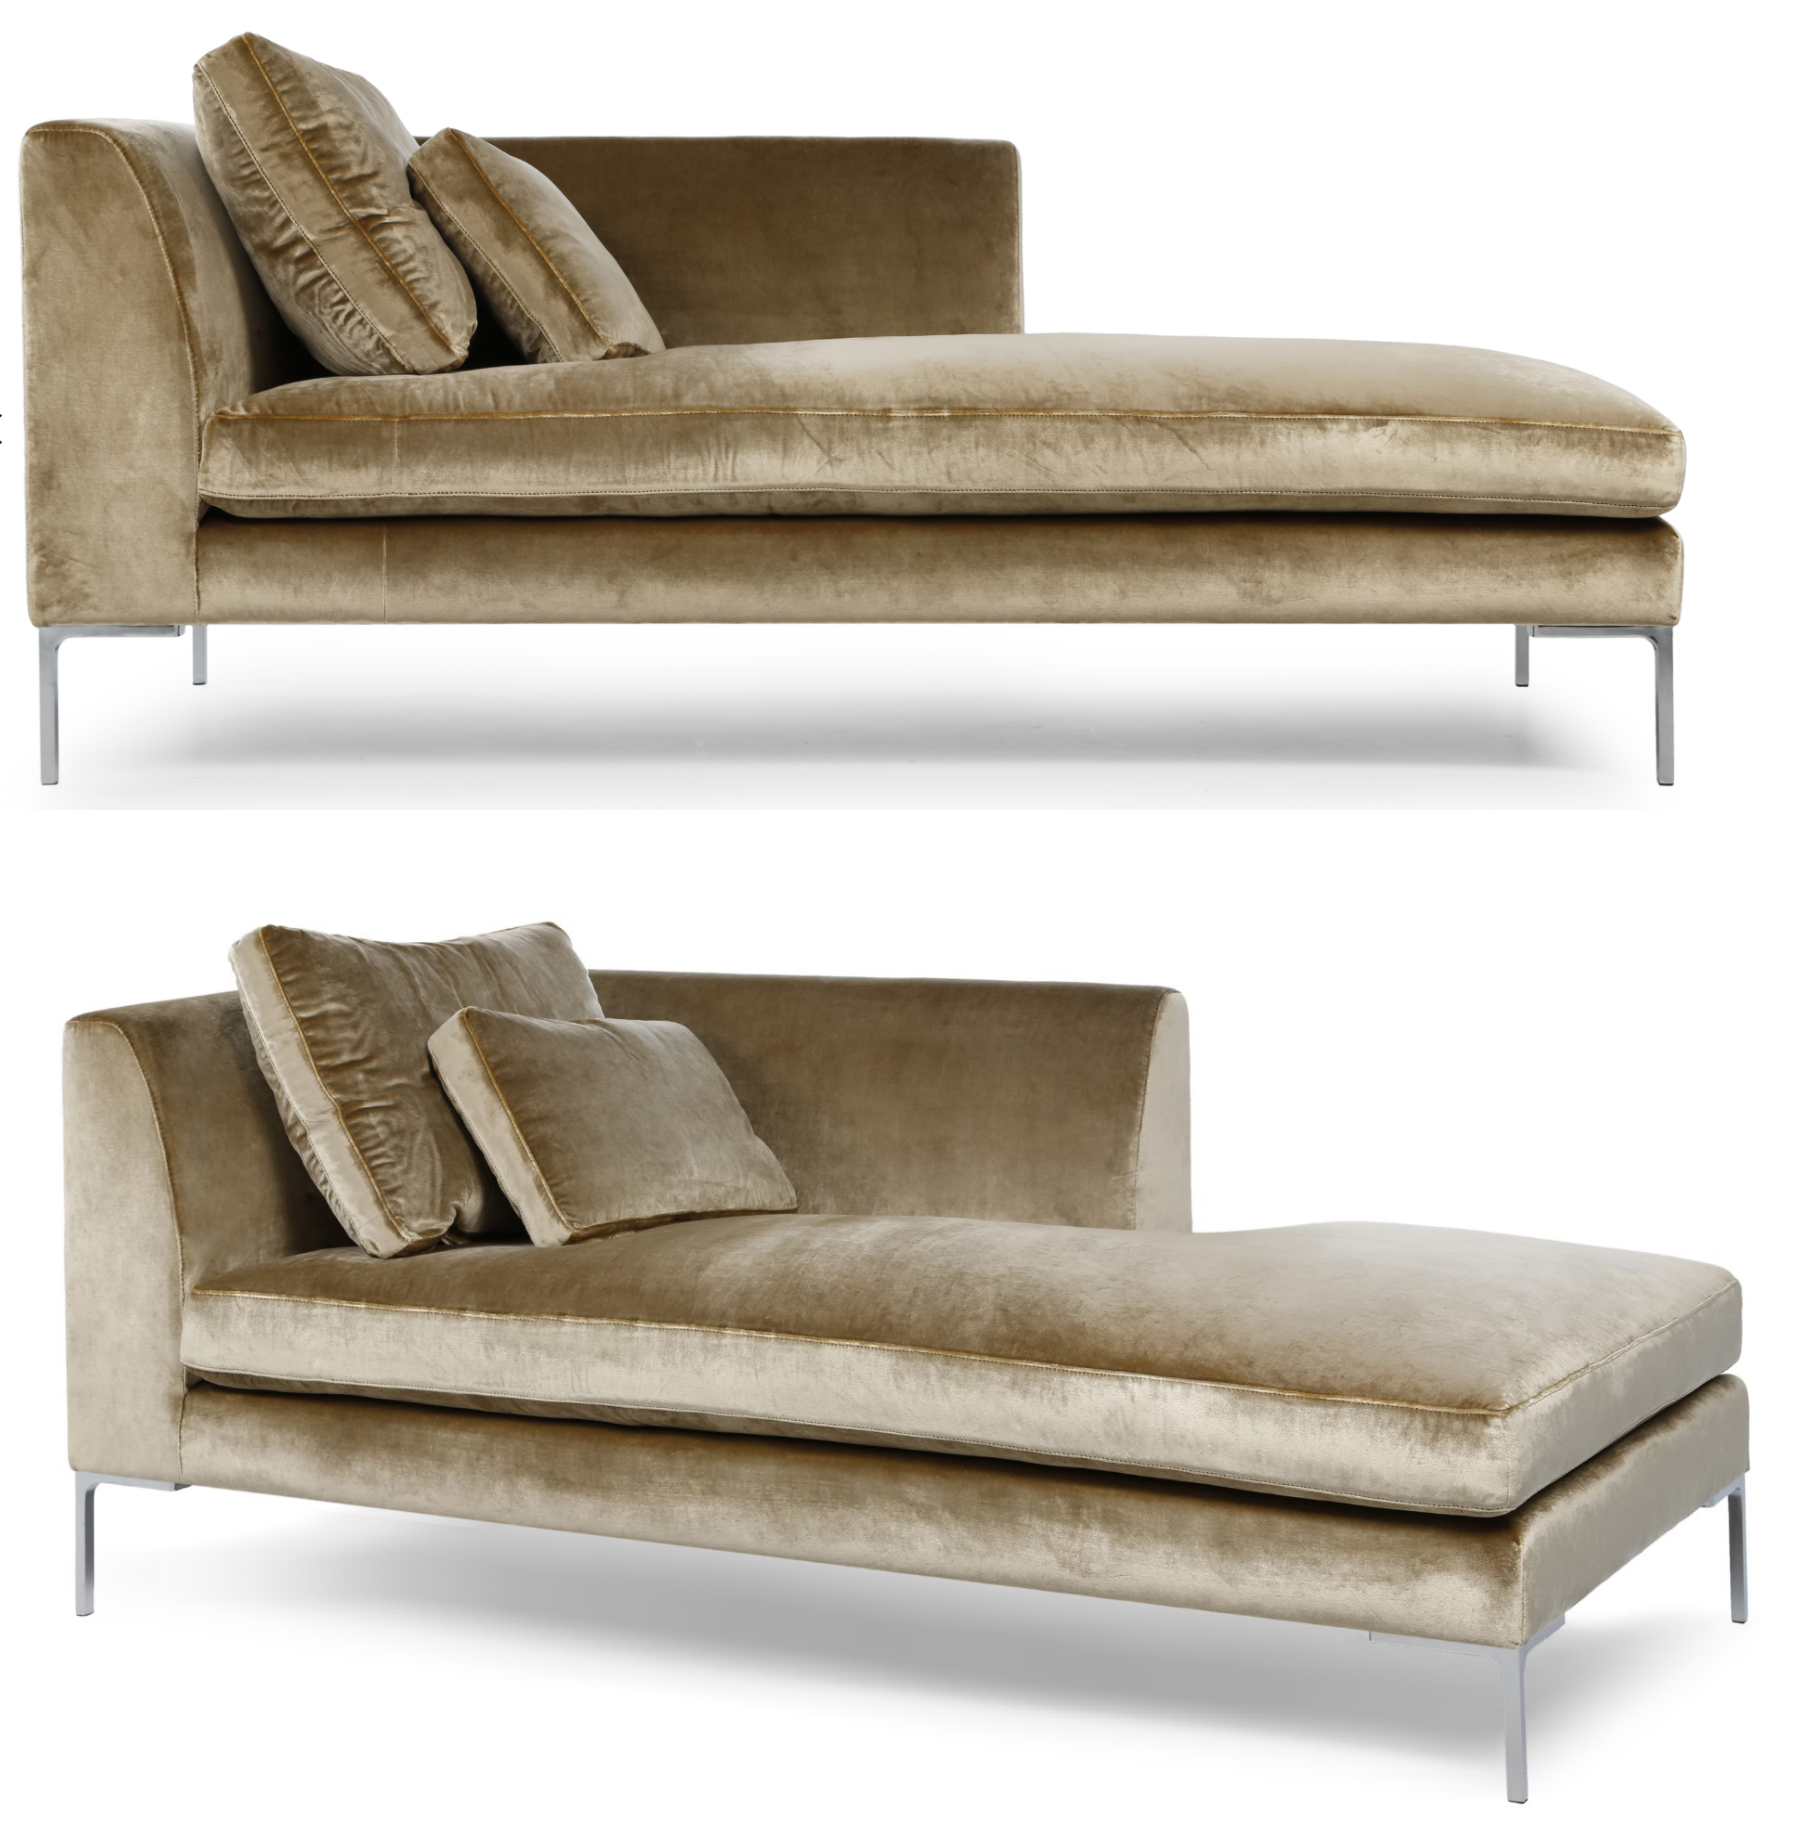 This Sleek And Sophisticated Chaise Longue Is One Of Our Bestselling Models And Well Suited To Modern Modern Chaise Lounge Minimalist Sofa Chaise Lounge Chair